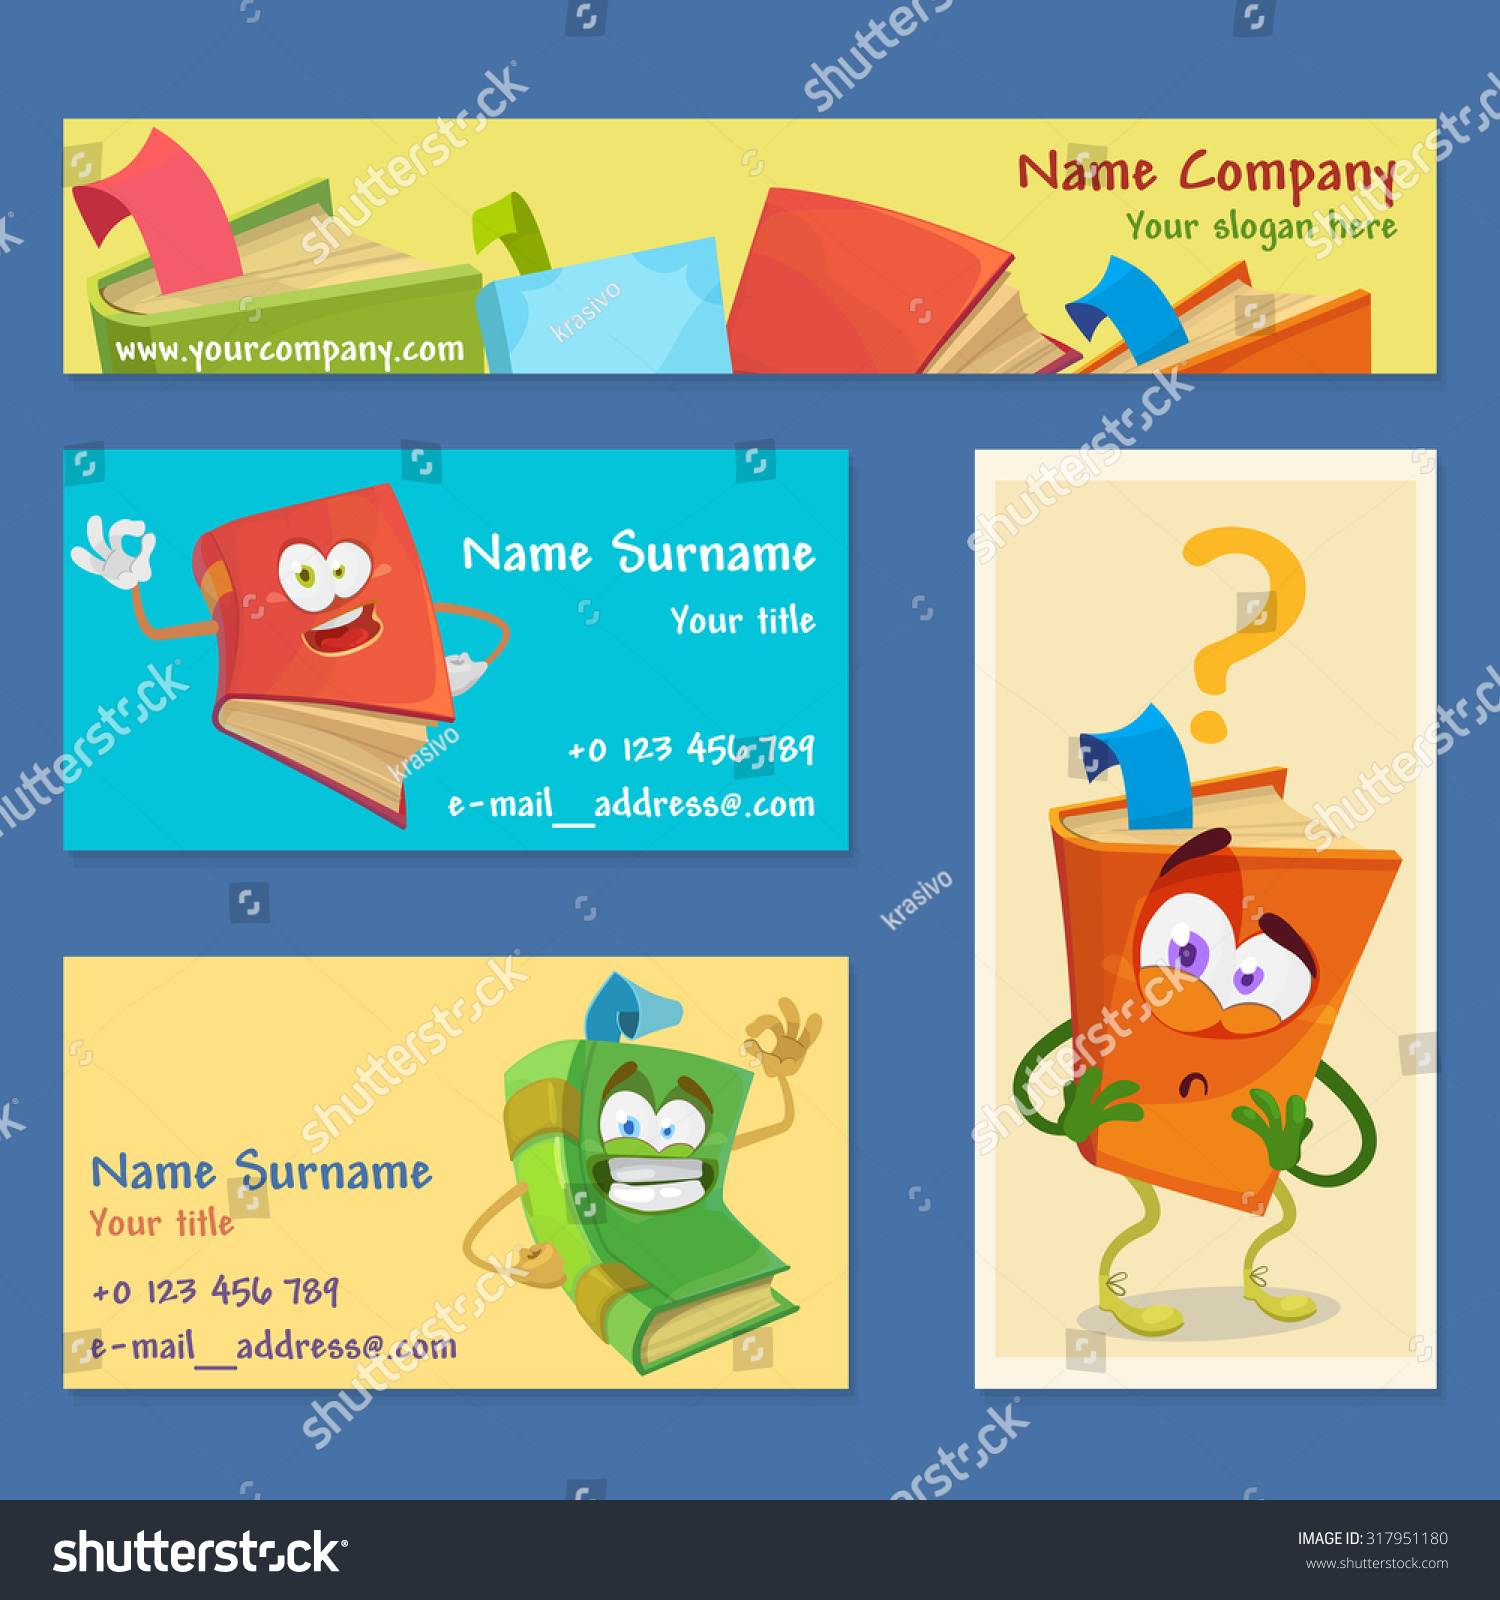 Cartoon Business Cards Gallery - Free Business Cards